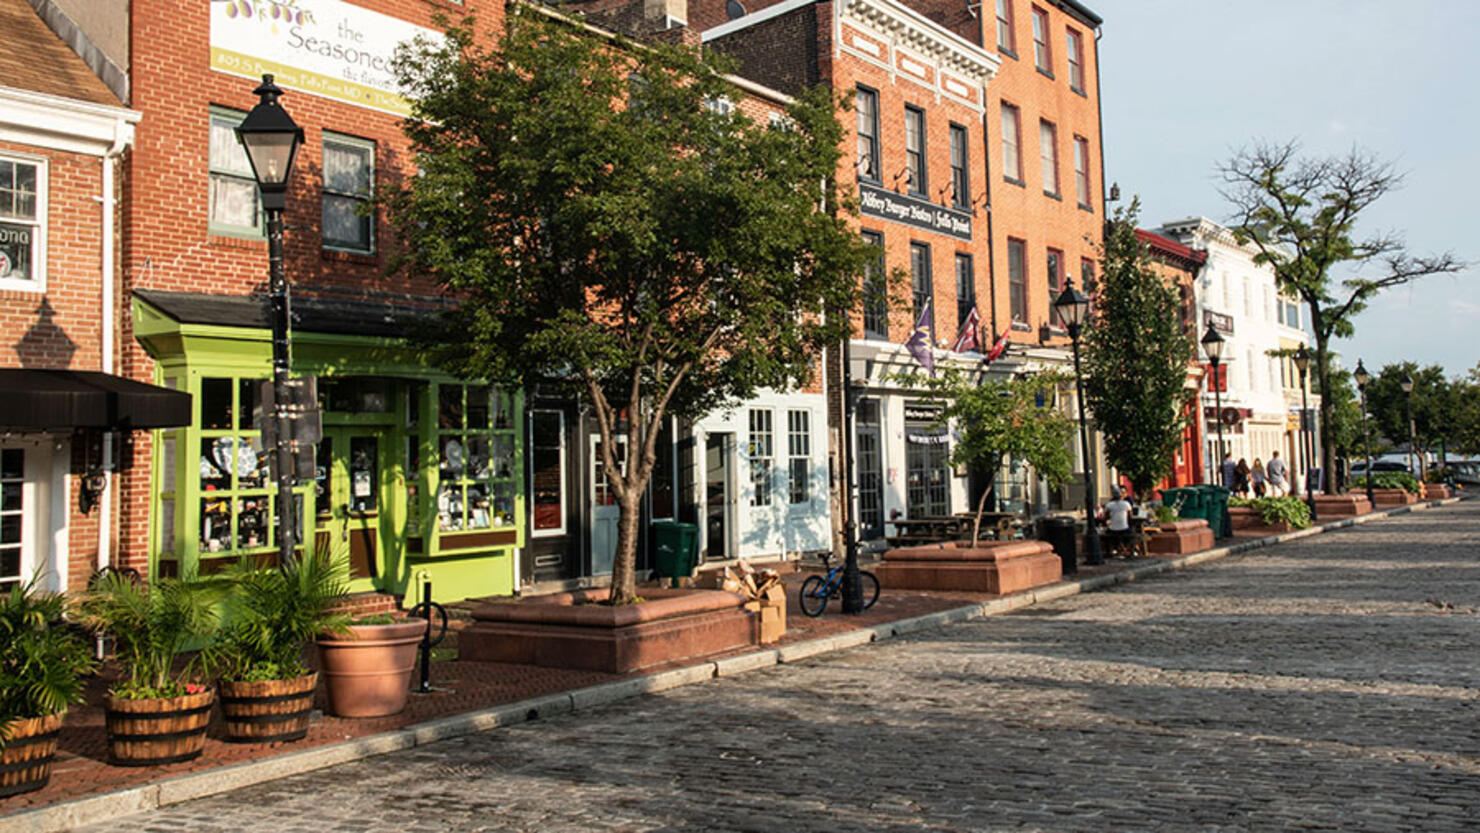 Shops in Fells Point district of Baltimore, Maryland